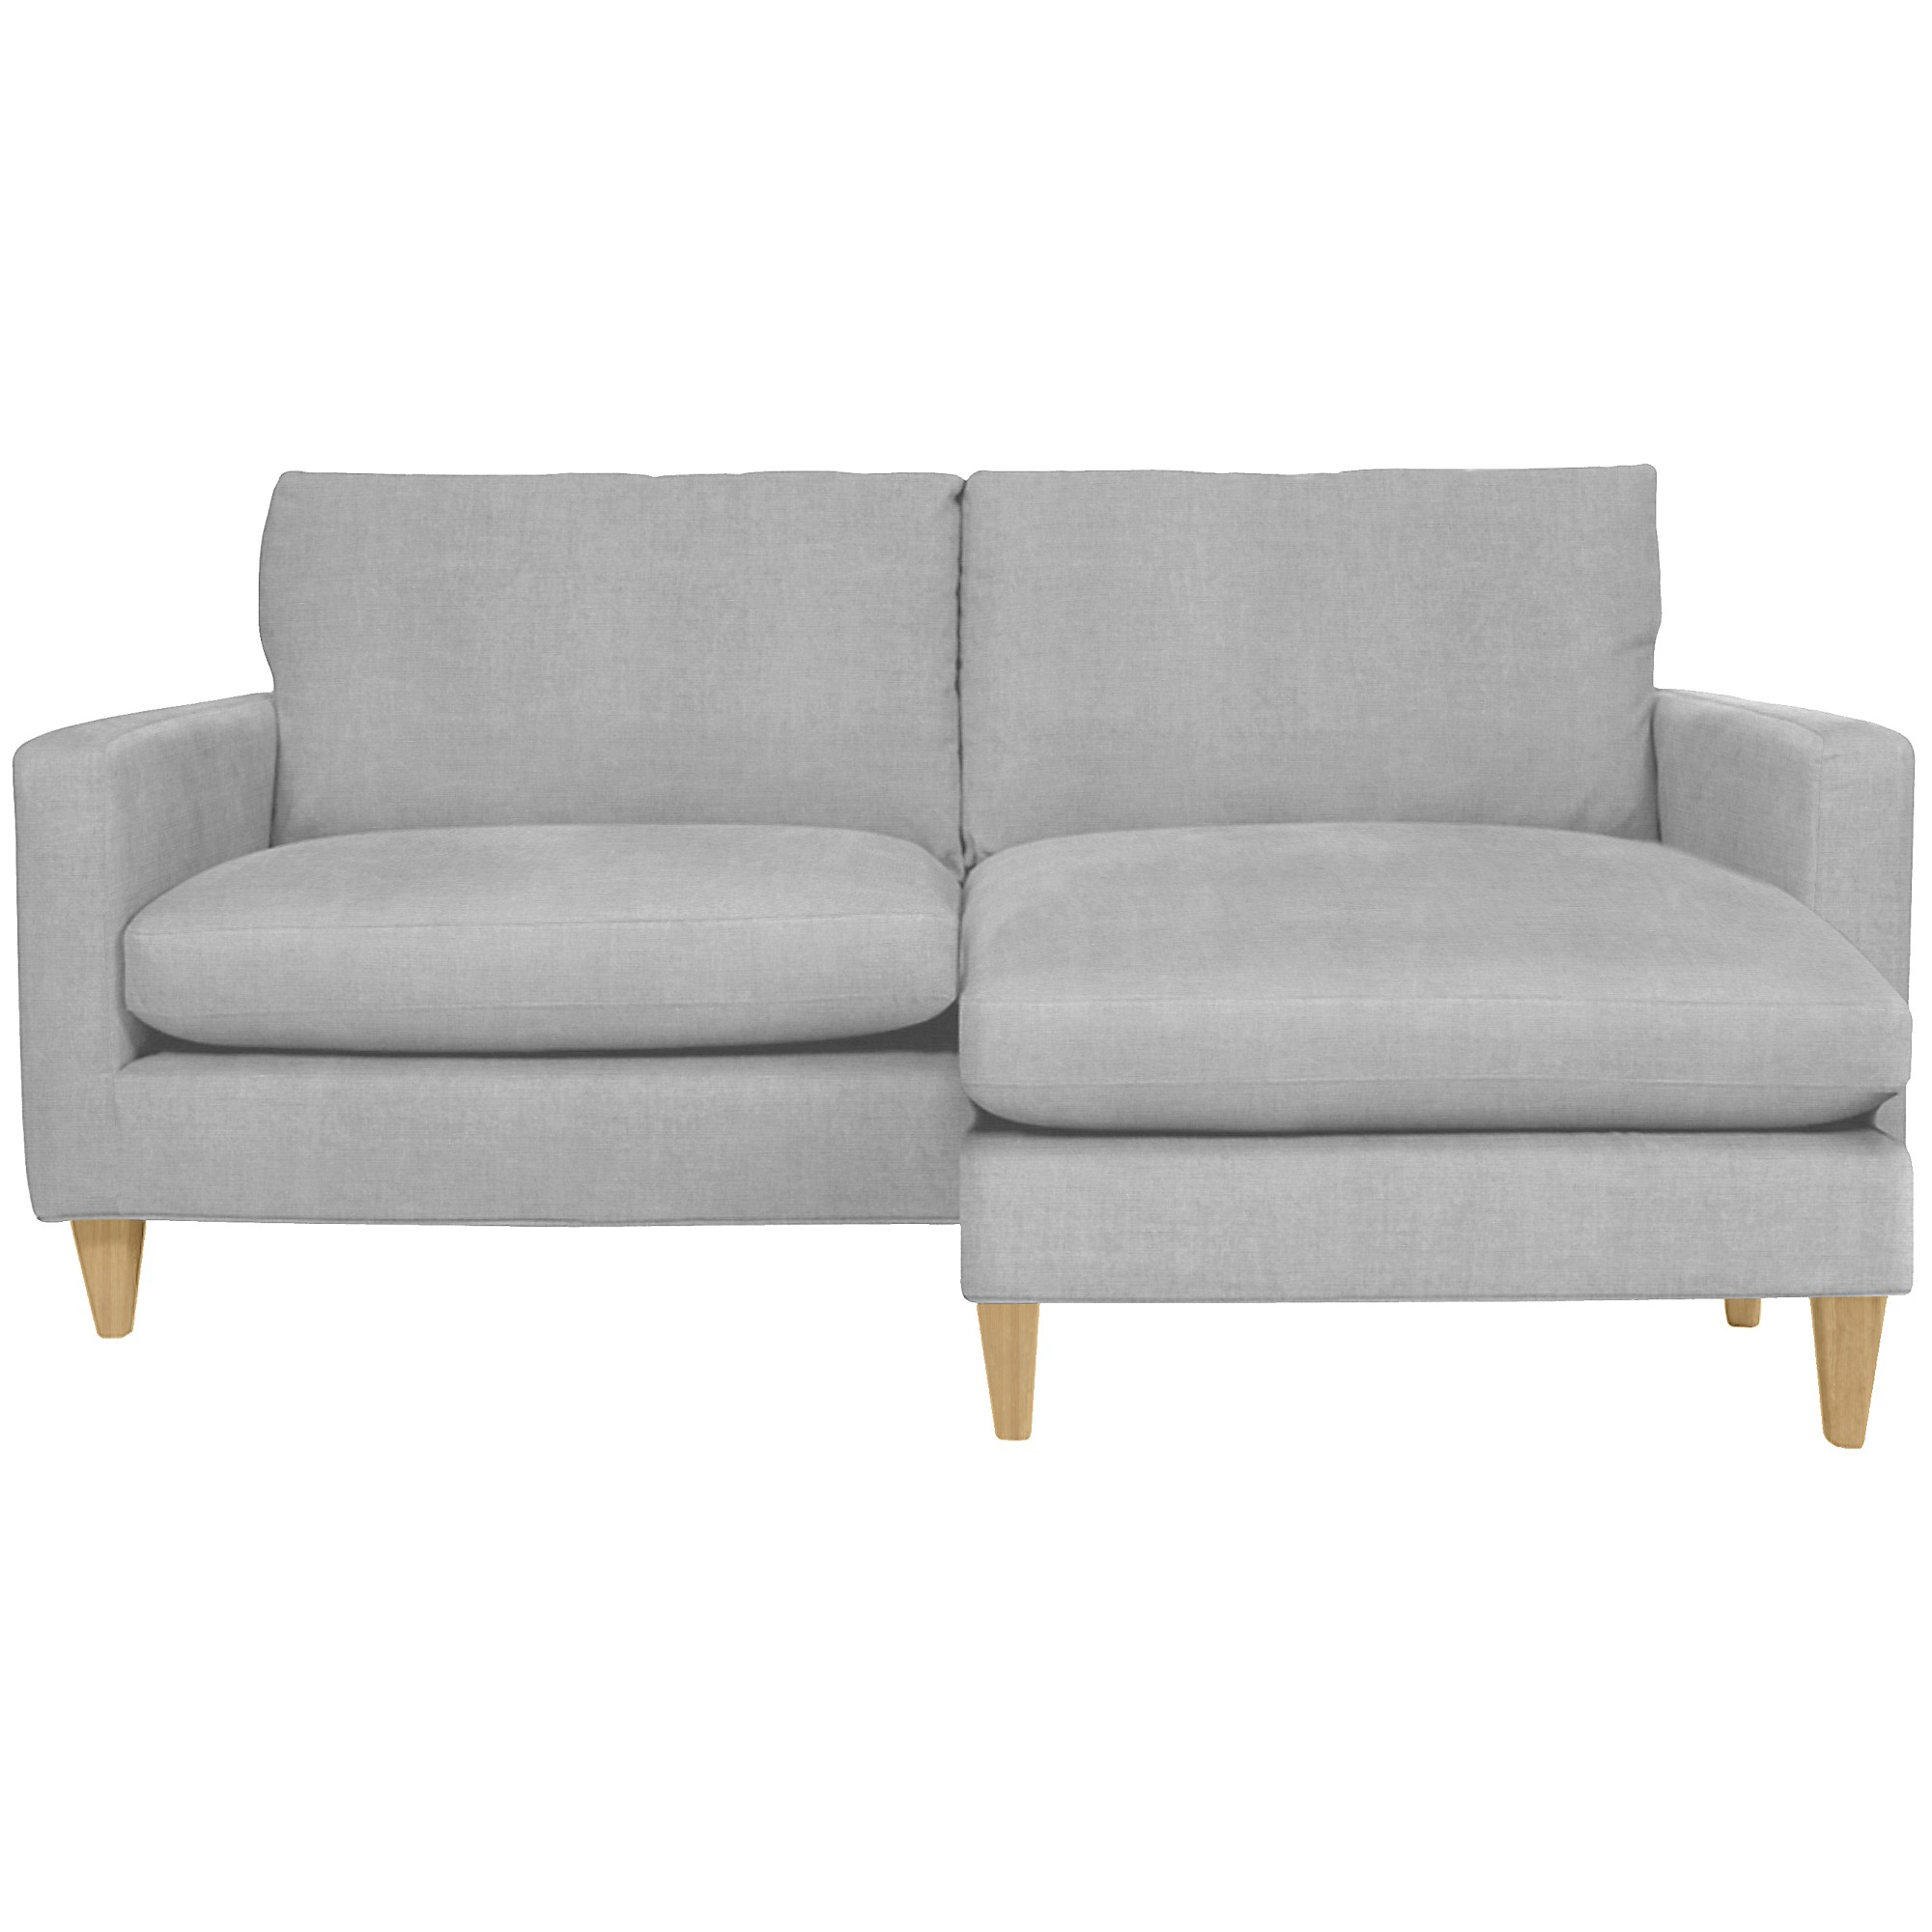 John lewis bailey fixed cover rhf chaise end sofa review for Chaise end sofa uk